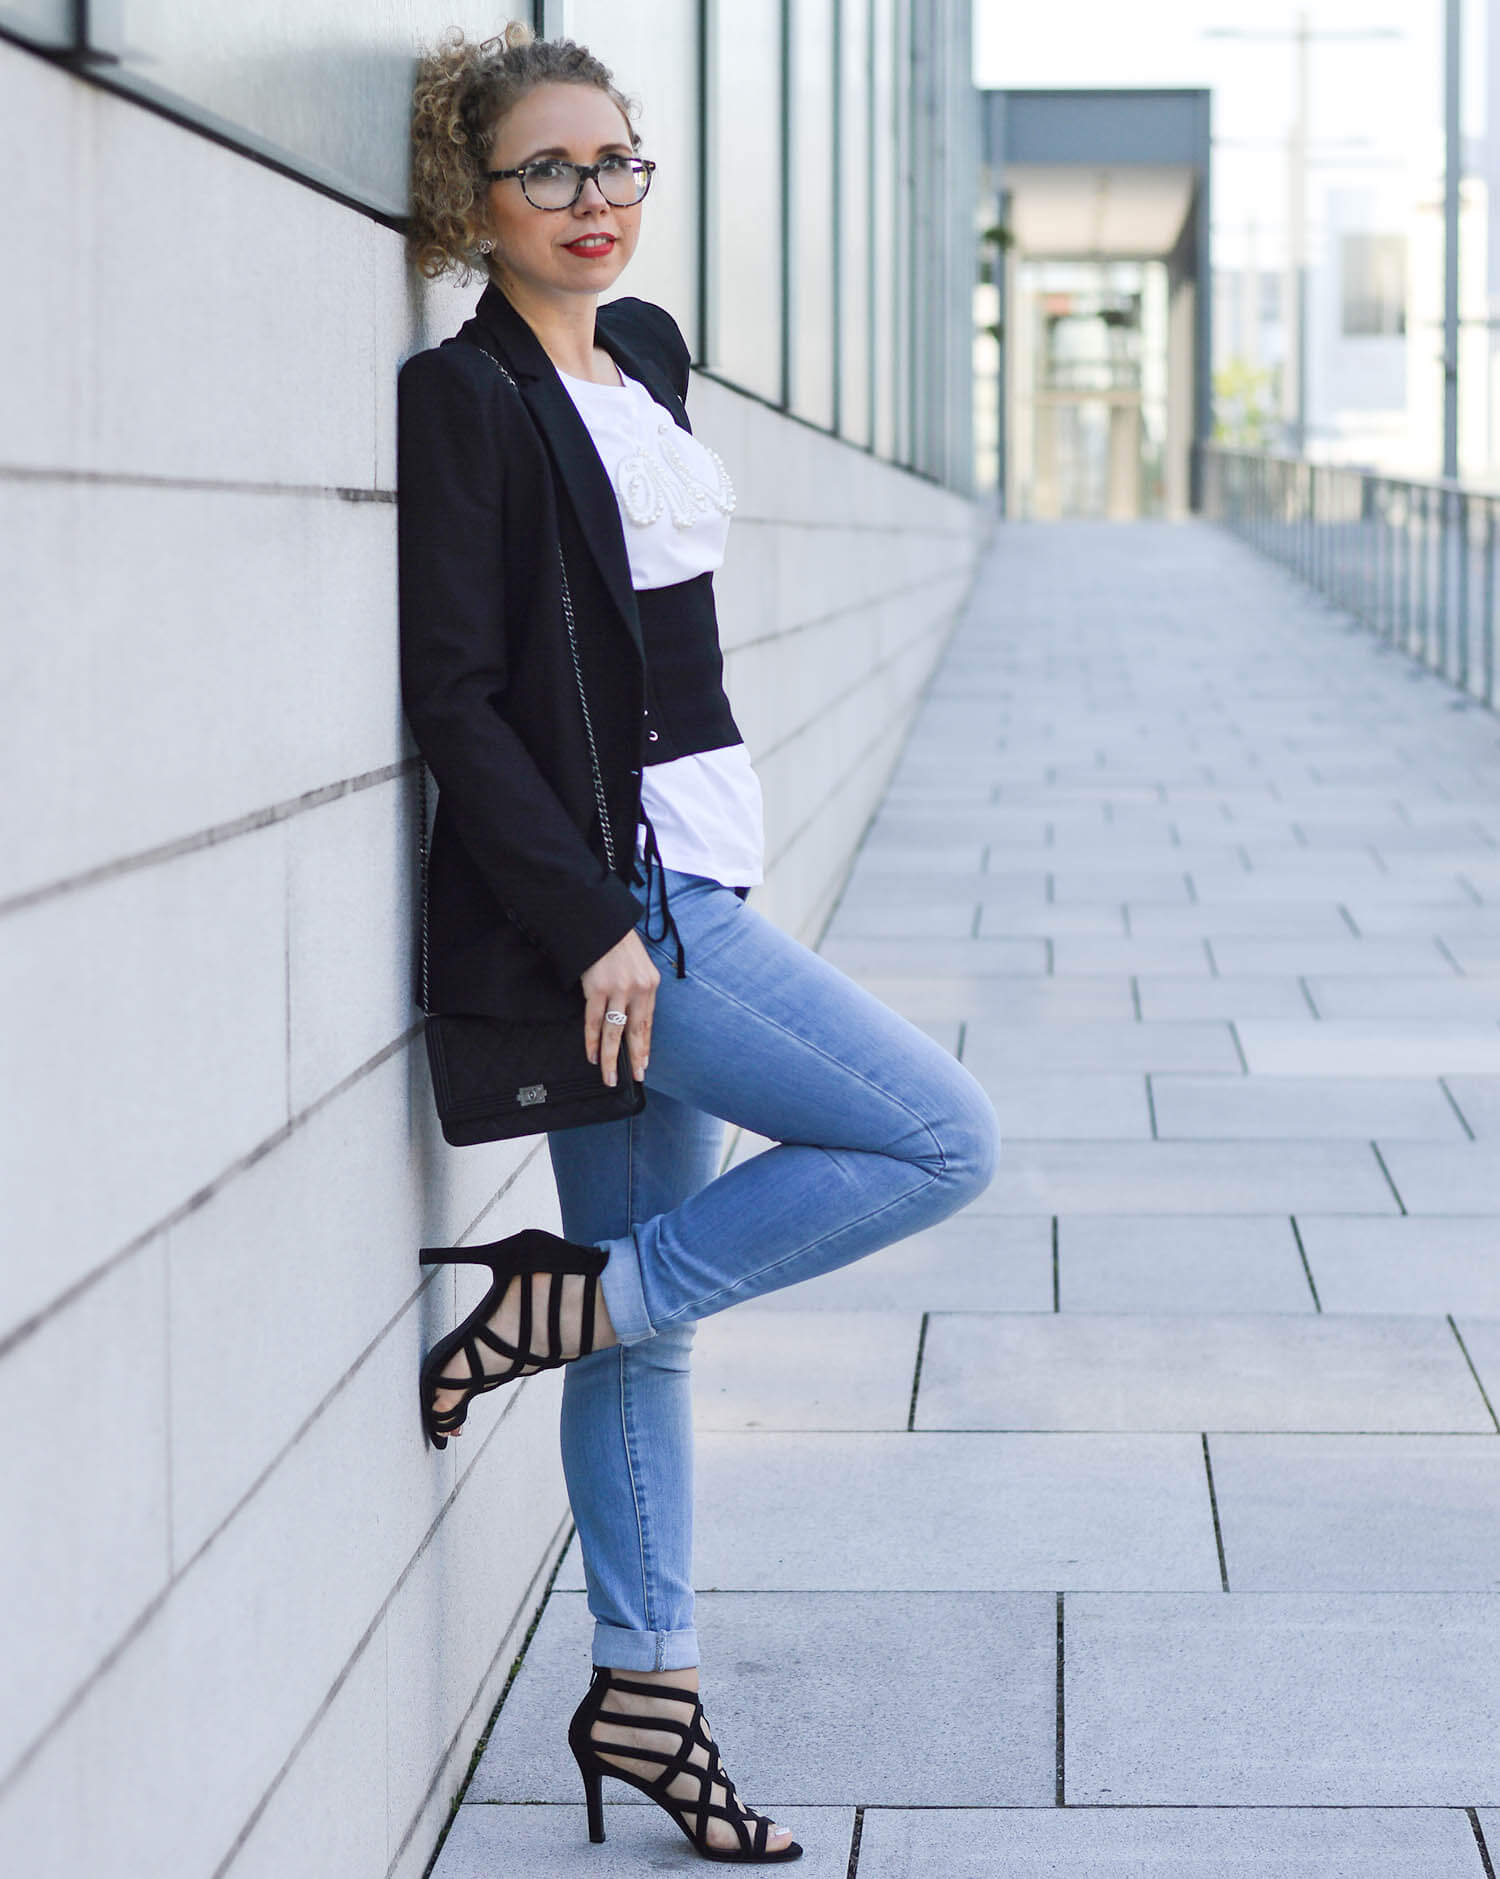 Marionette-fashionblog-nrw-Outfit-Corset-Belt-Pearls-HighHeels-Chanel-streetstyle